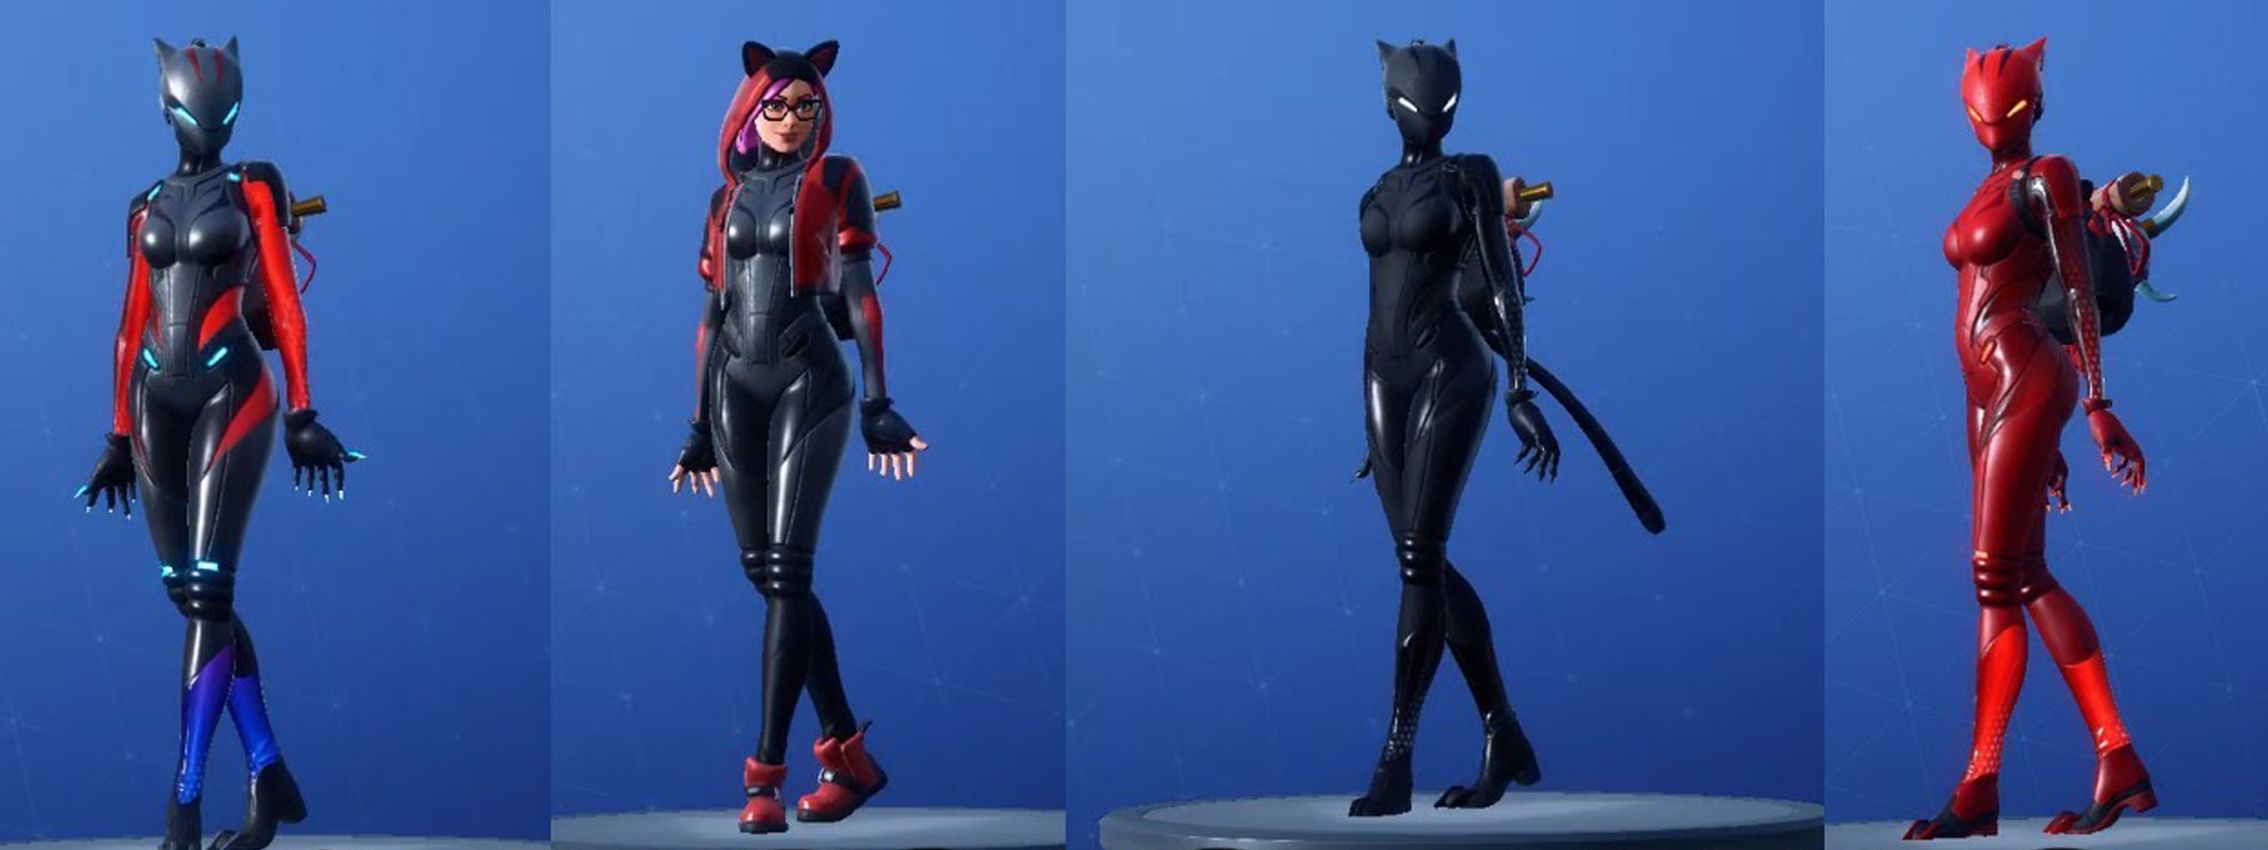 New Lynx Skin Colors On Different Outfits In Fortnite Fortnite